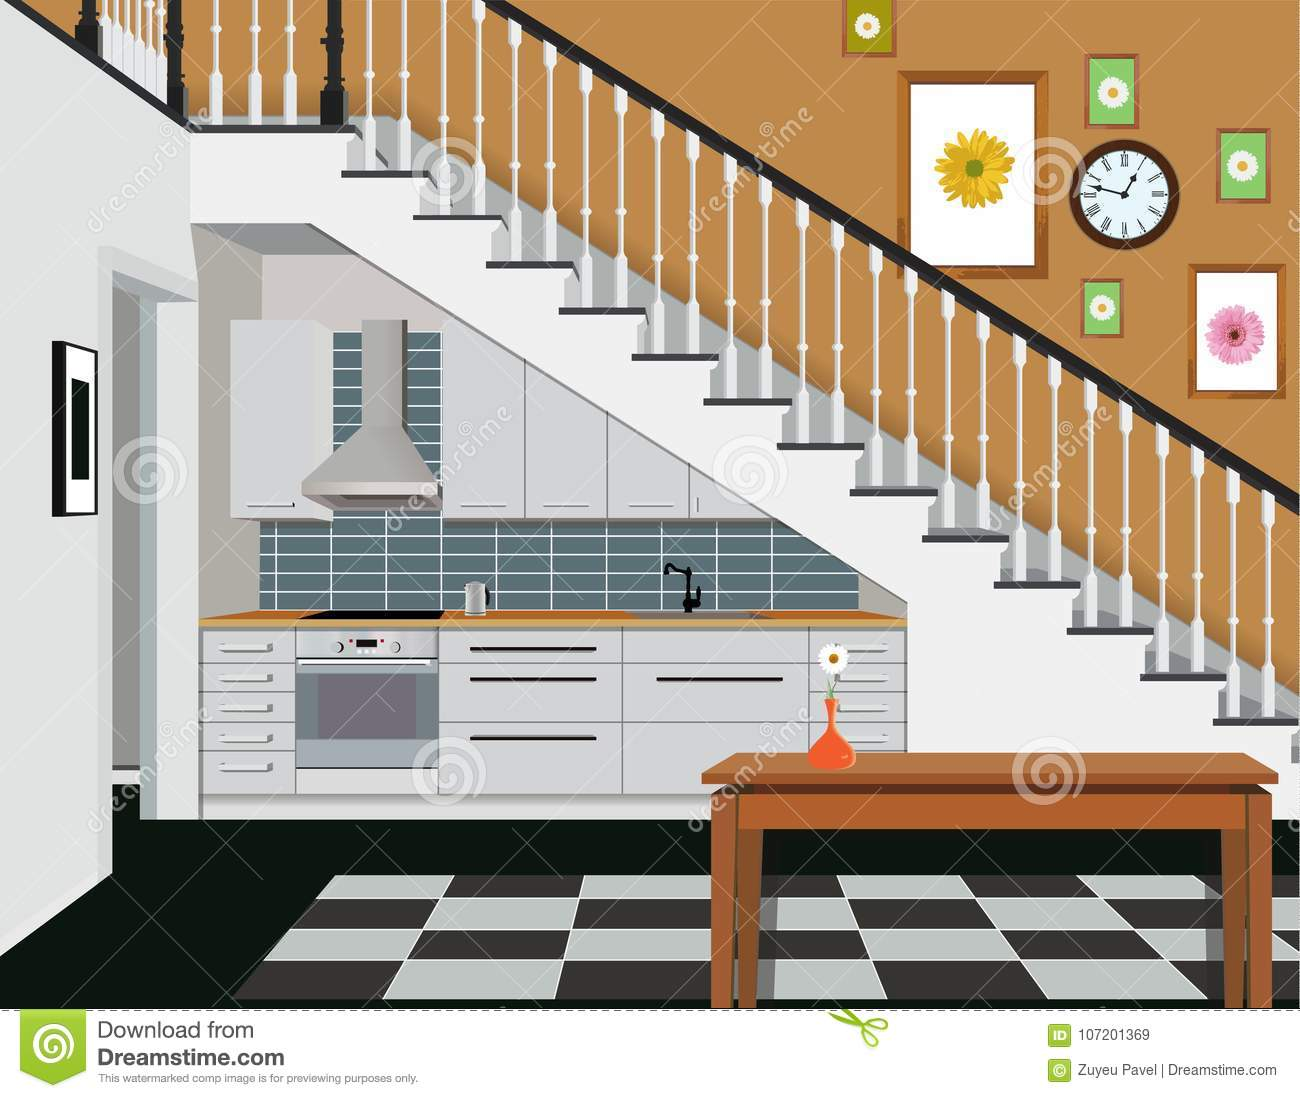 Download Interior Of The Kitchen Under The Stairs With Furniture. Design Of  Modern Kitchen.